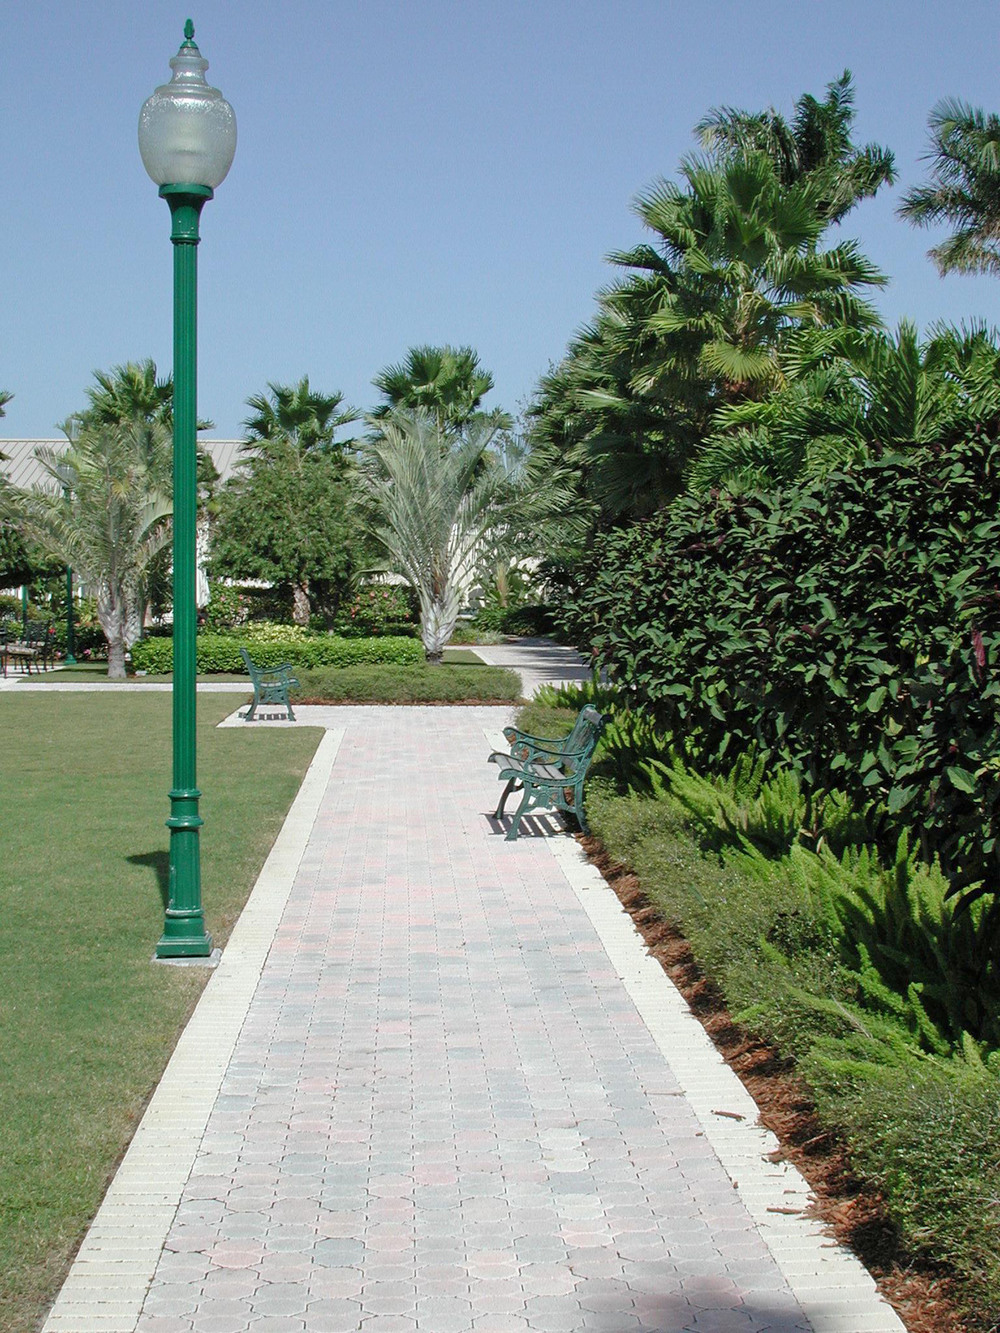 Paver walk and Bench at Christ Fellowship Church Landscaping PBG.jpg